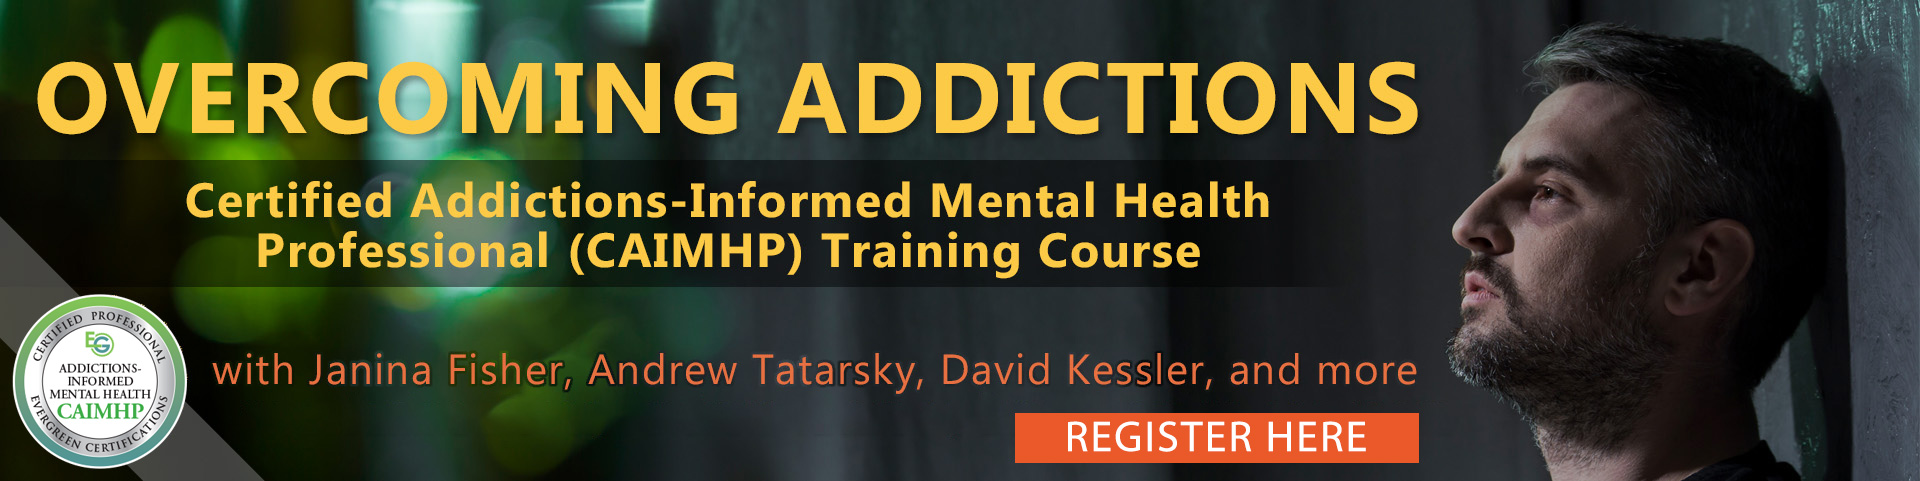 Overcoming Addictions Online Course